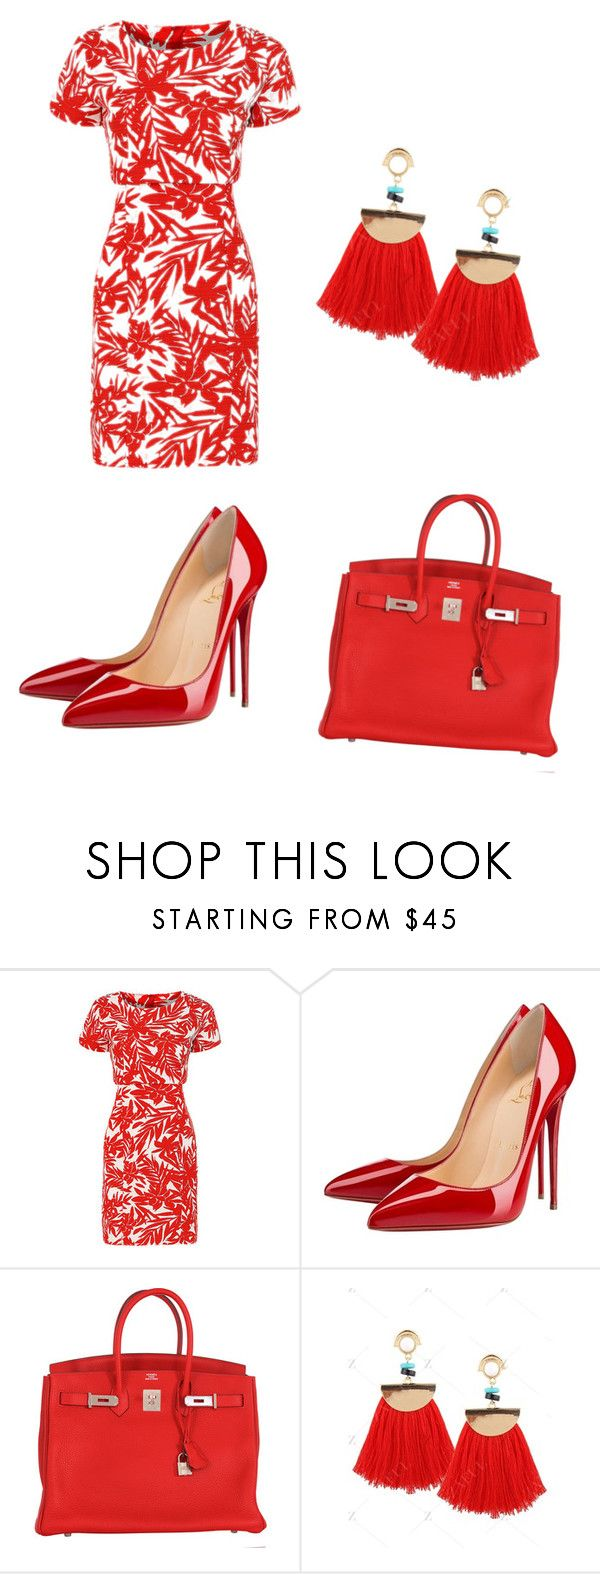 """Untitled #208"" by ioannicoleta ❤ liked on Polyvore featuring Christian Louboutin and Hermès"